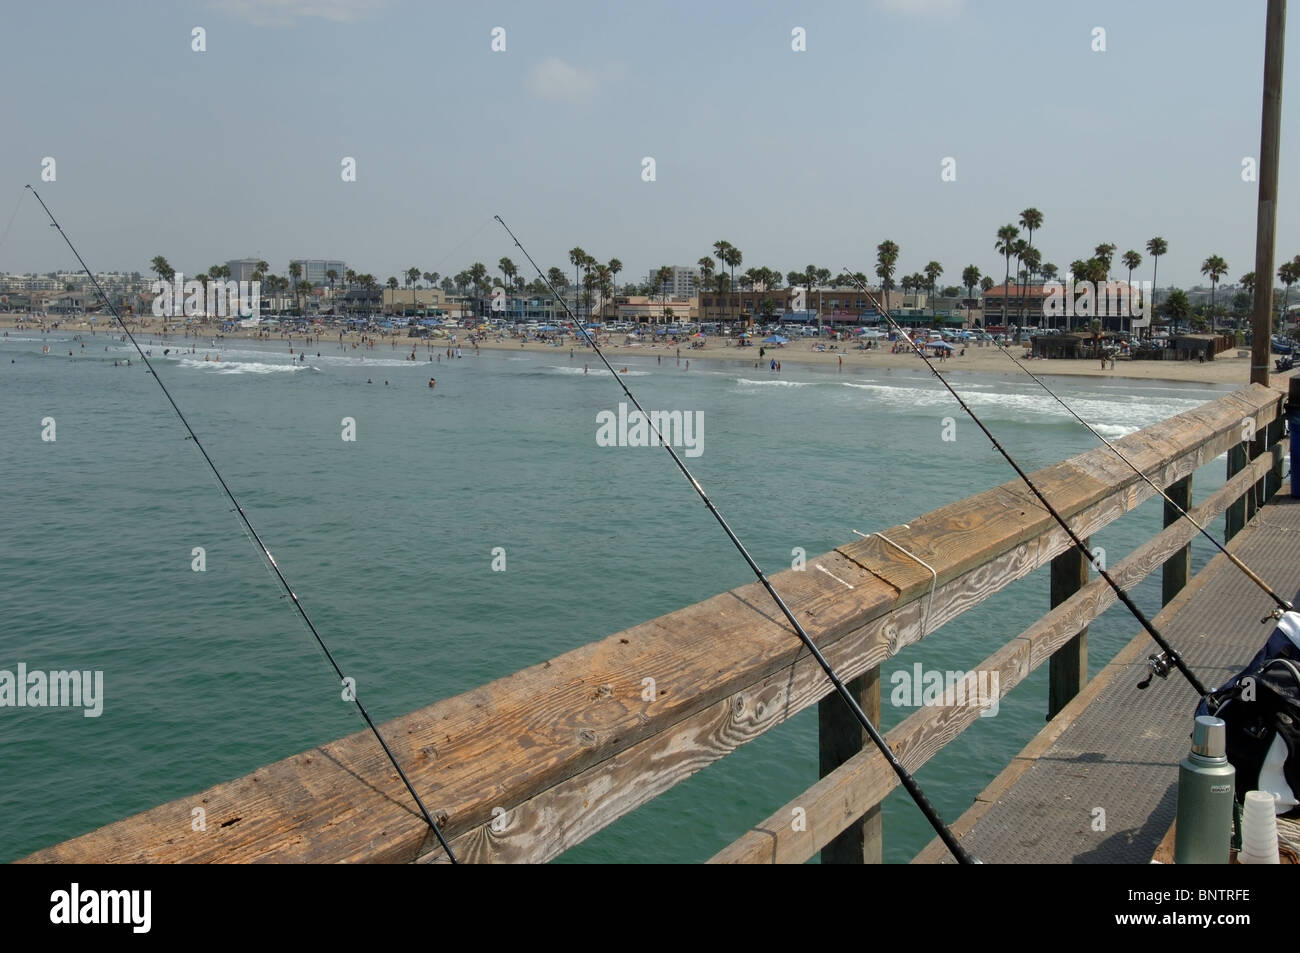 fishing on the newport beach pier in orange county